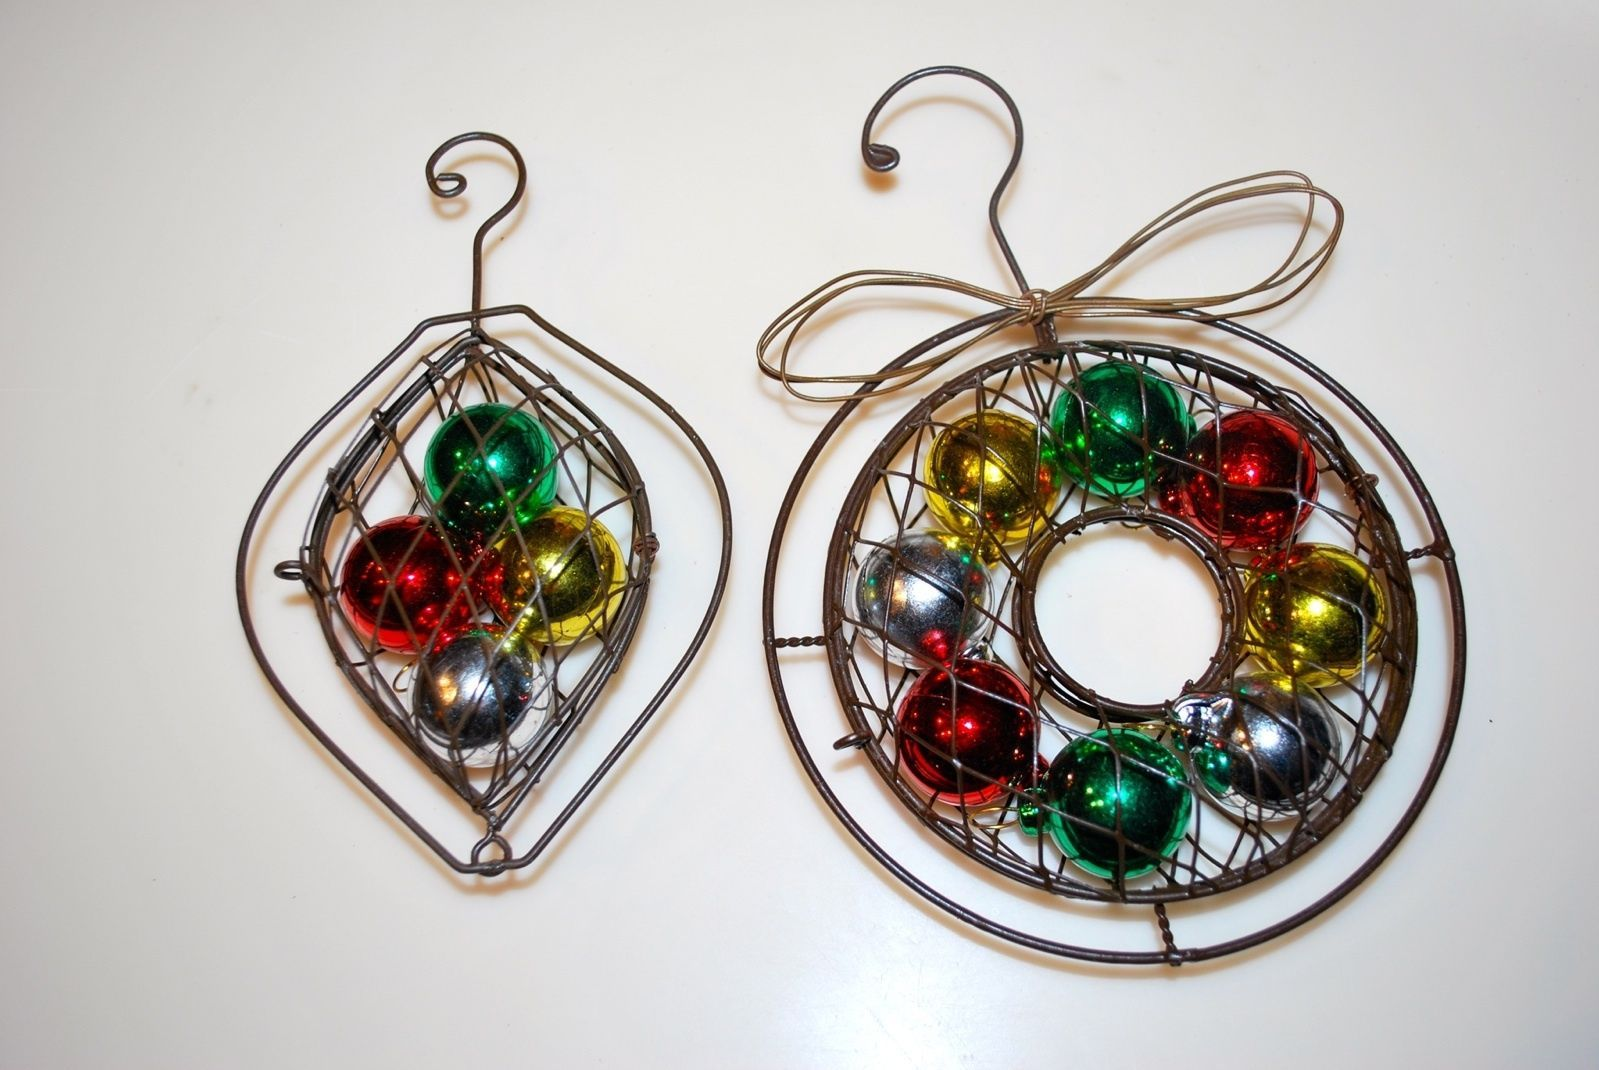 Rustic Metal Net Colored Ball Wreath Ornaments Lot Set of 2